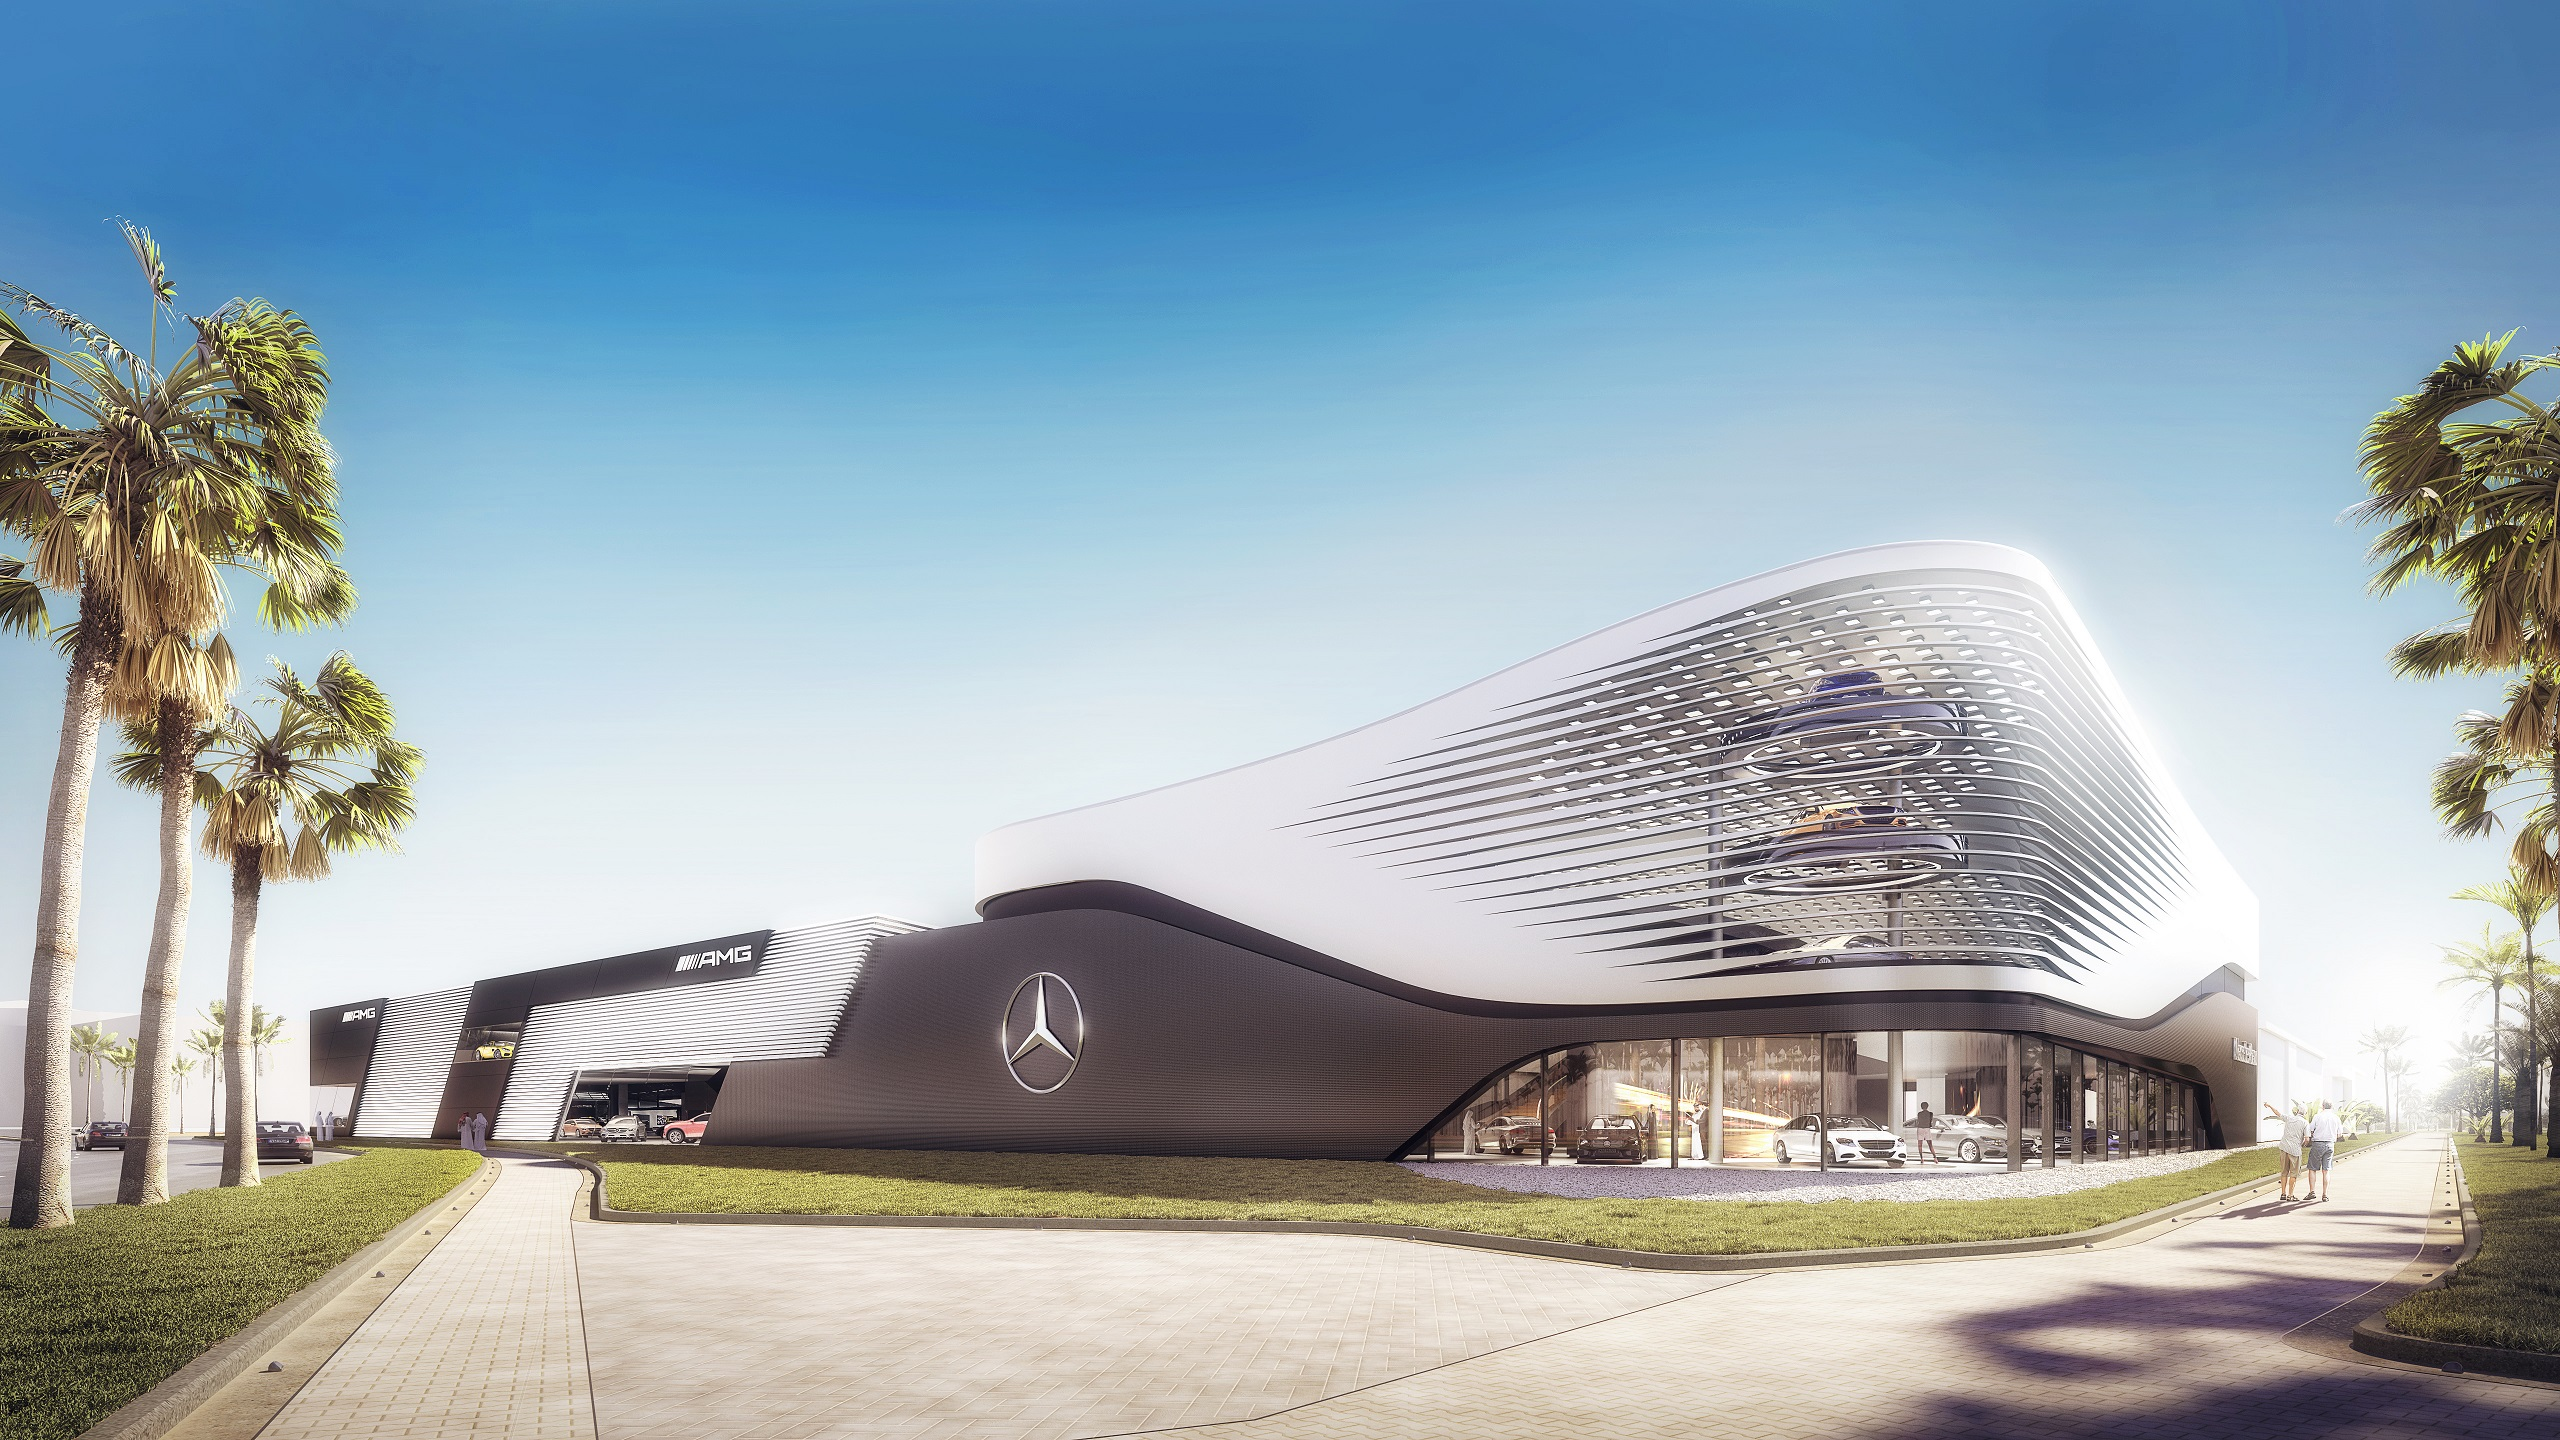 mercedes-benz and amg showroom on yas island